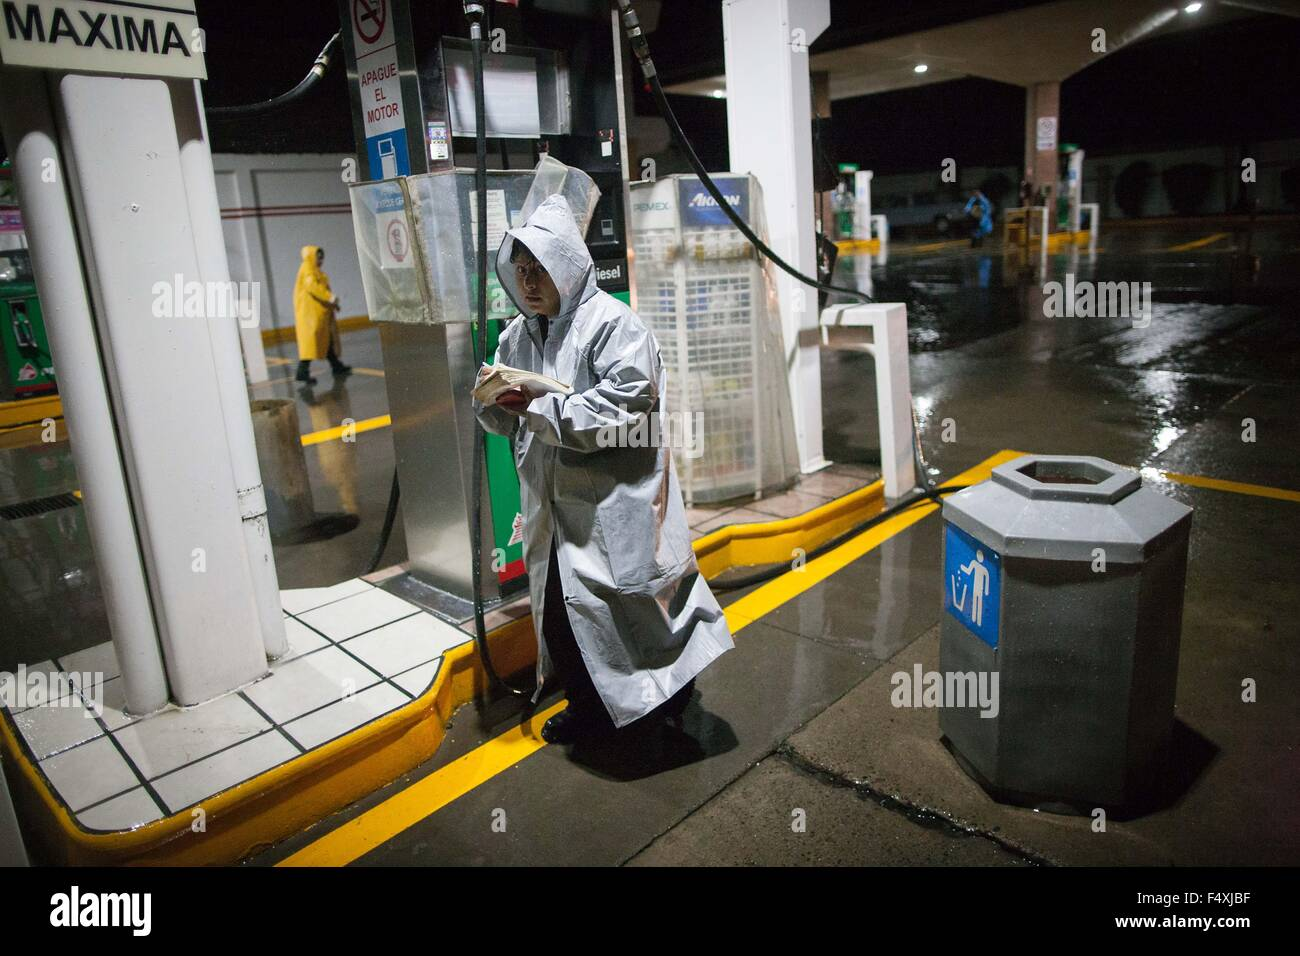 "Ameca, Mexico. 23rd Oct, 2015. Workers of a gas station prepare for the arrival of hurricane ""Patricia"" in Ameca, Stock Photo"